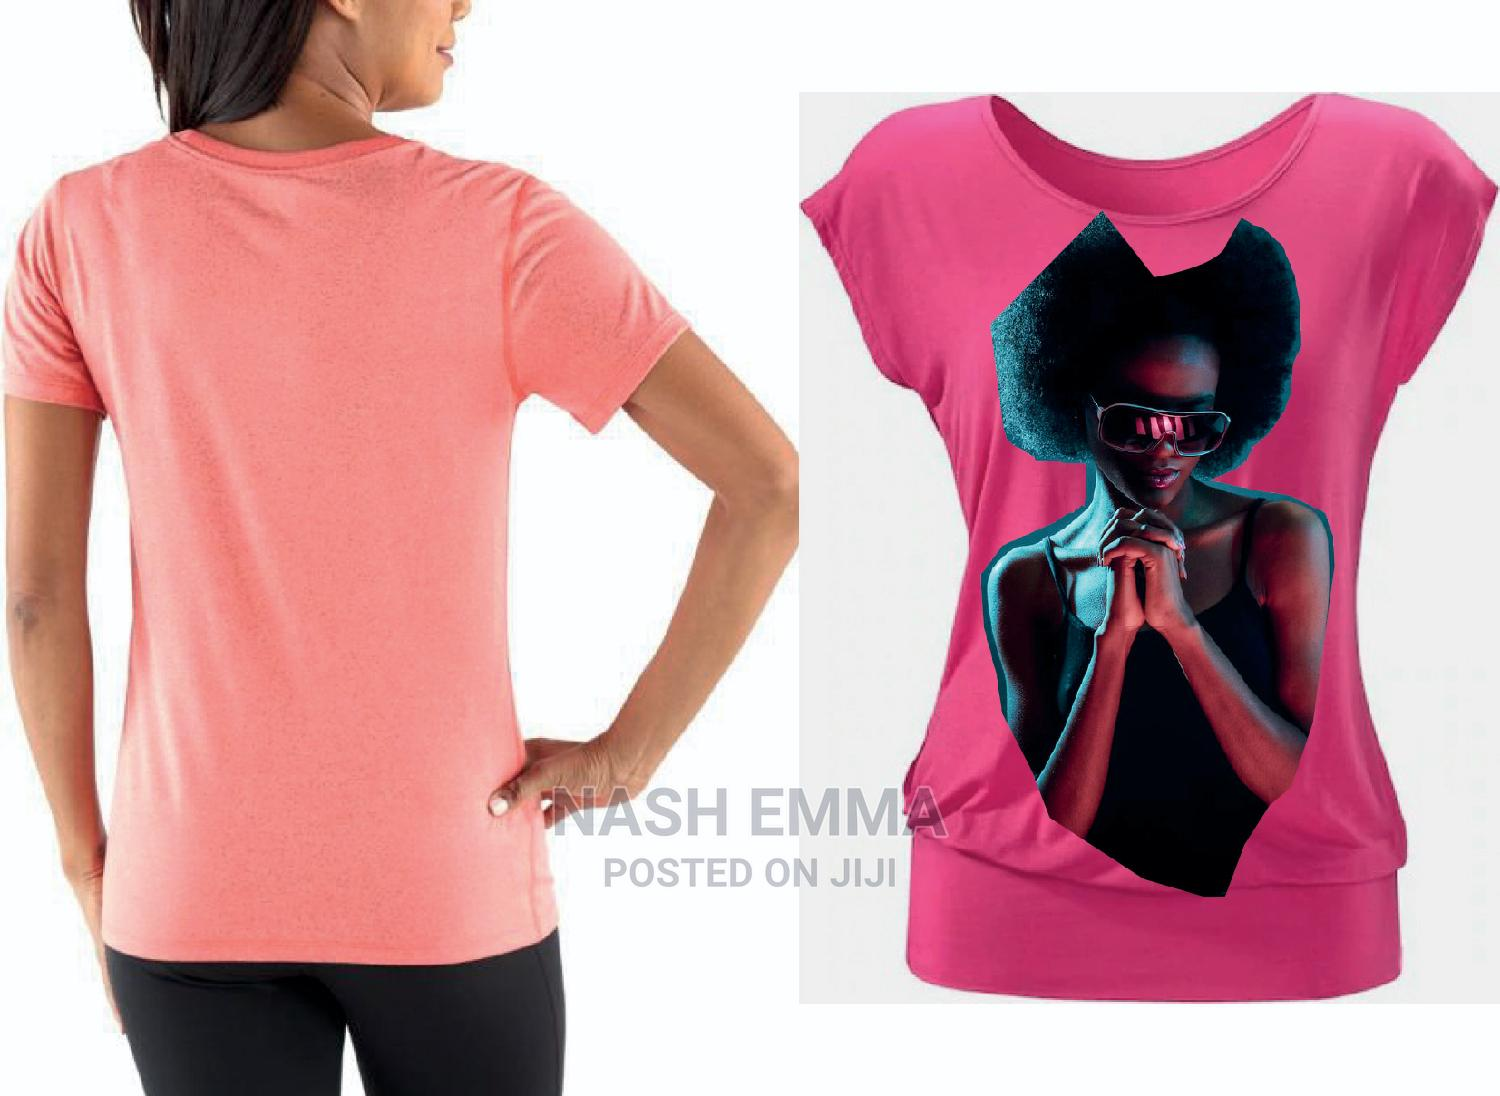 New Ladies Tops T-Shirts   Printing Services for sale in Kampala, Central Region, Uganda